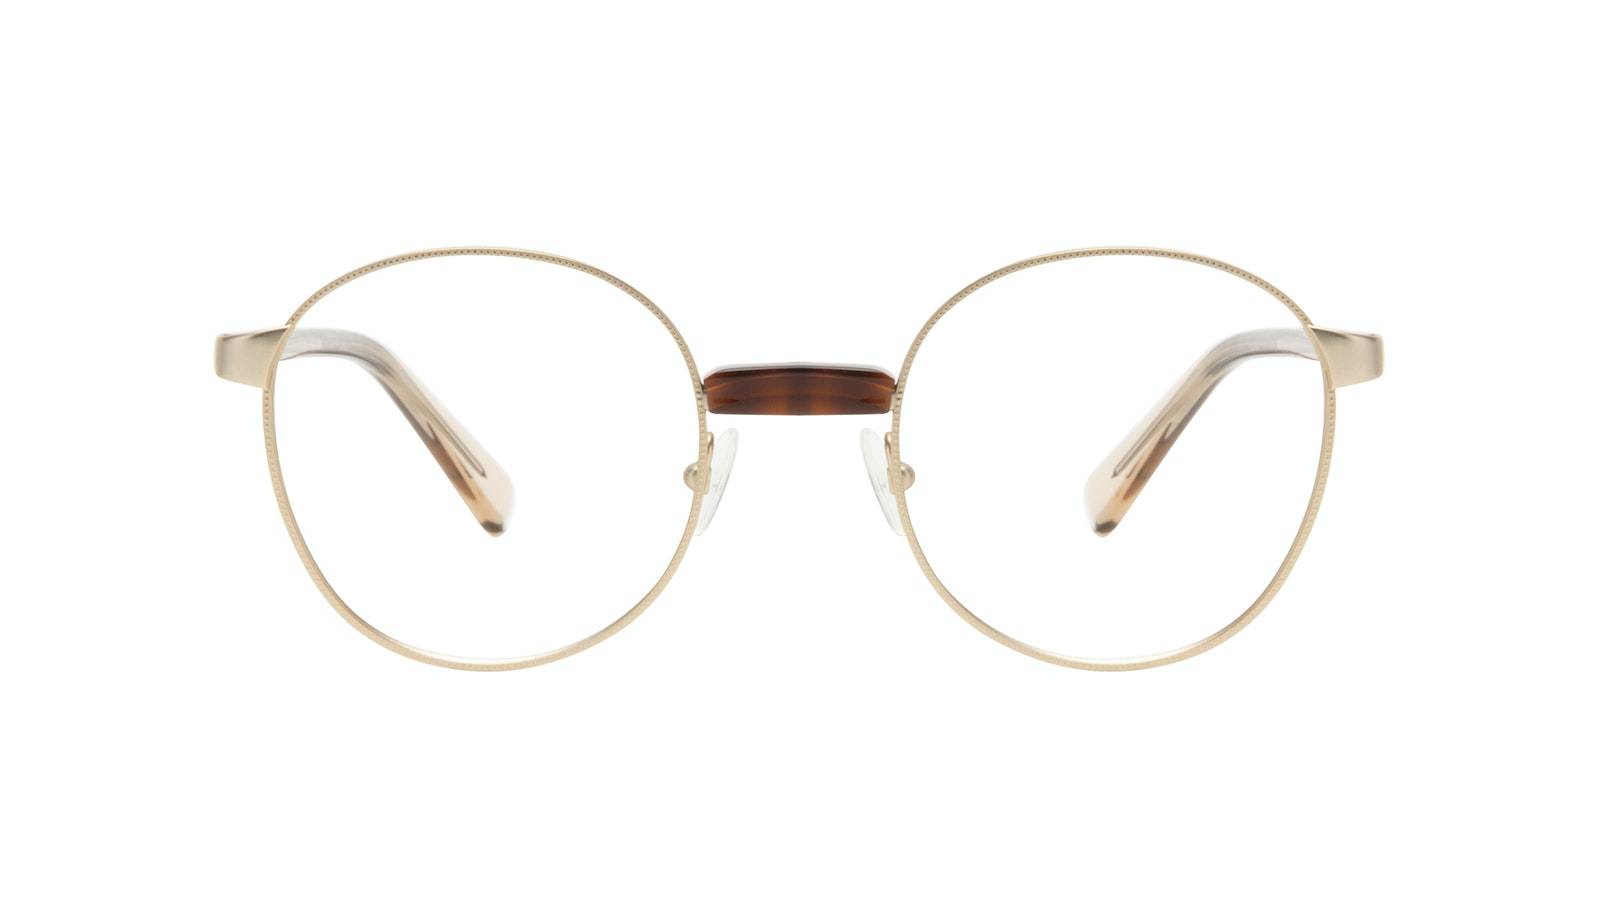 Affordable Fashion Glasses Round Eyeglasses Women Curious Gold